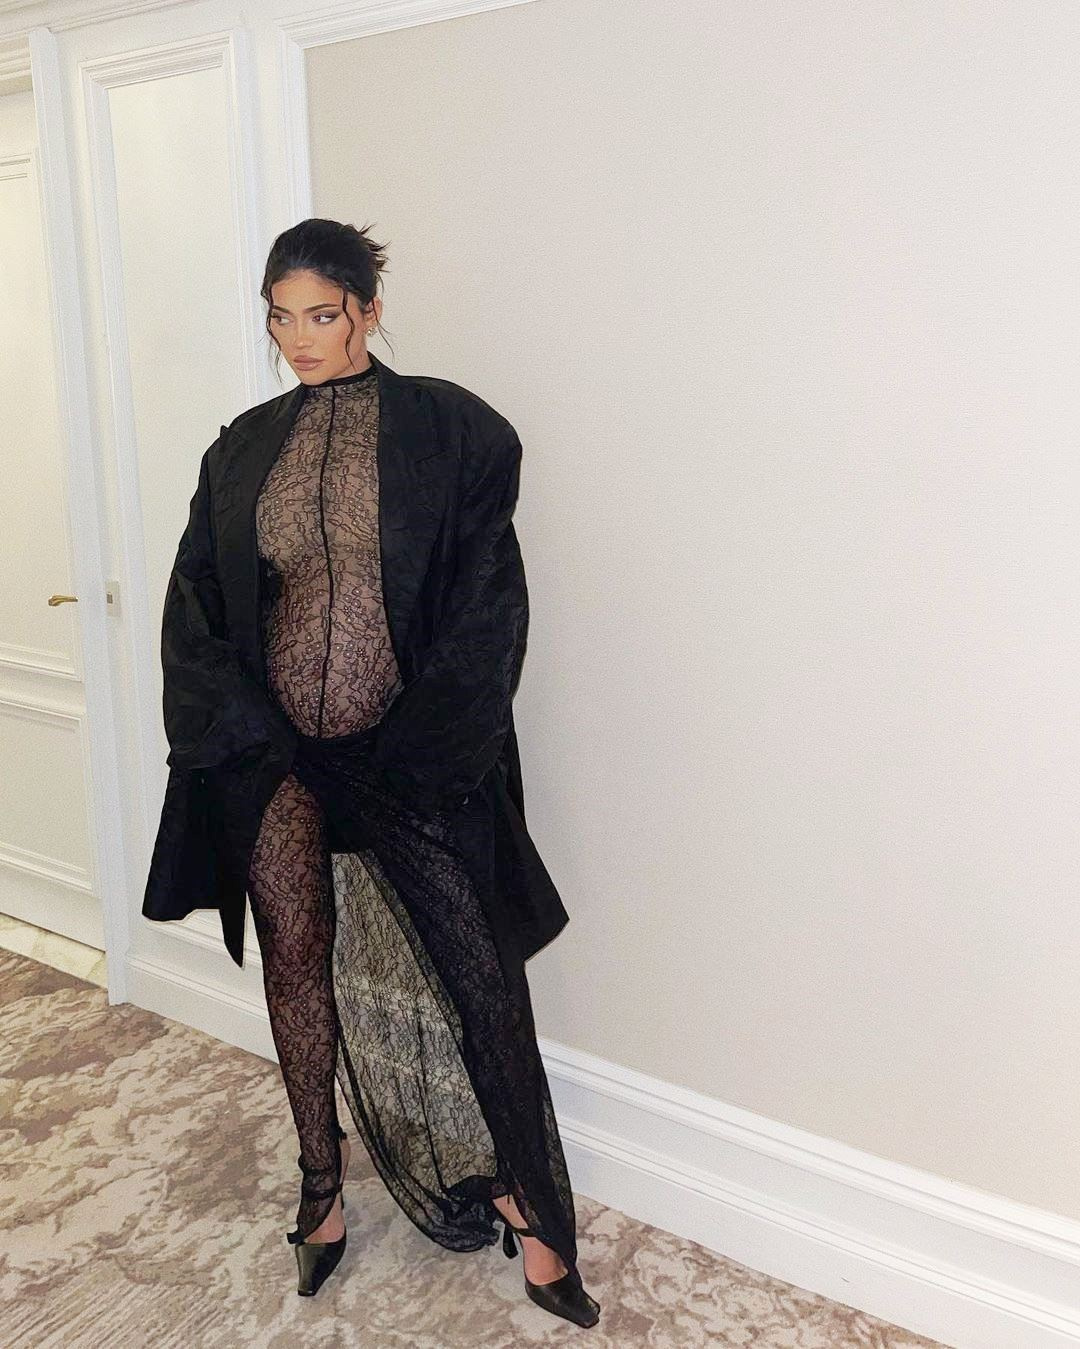 Kylie Jenner's Bump About Town! - Photo 7